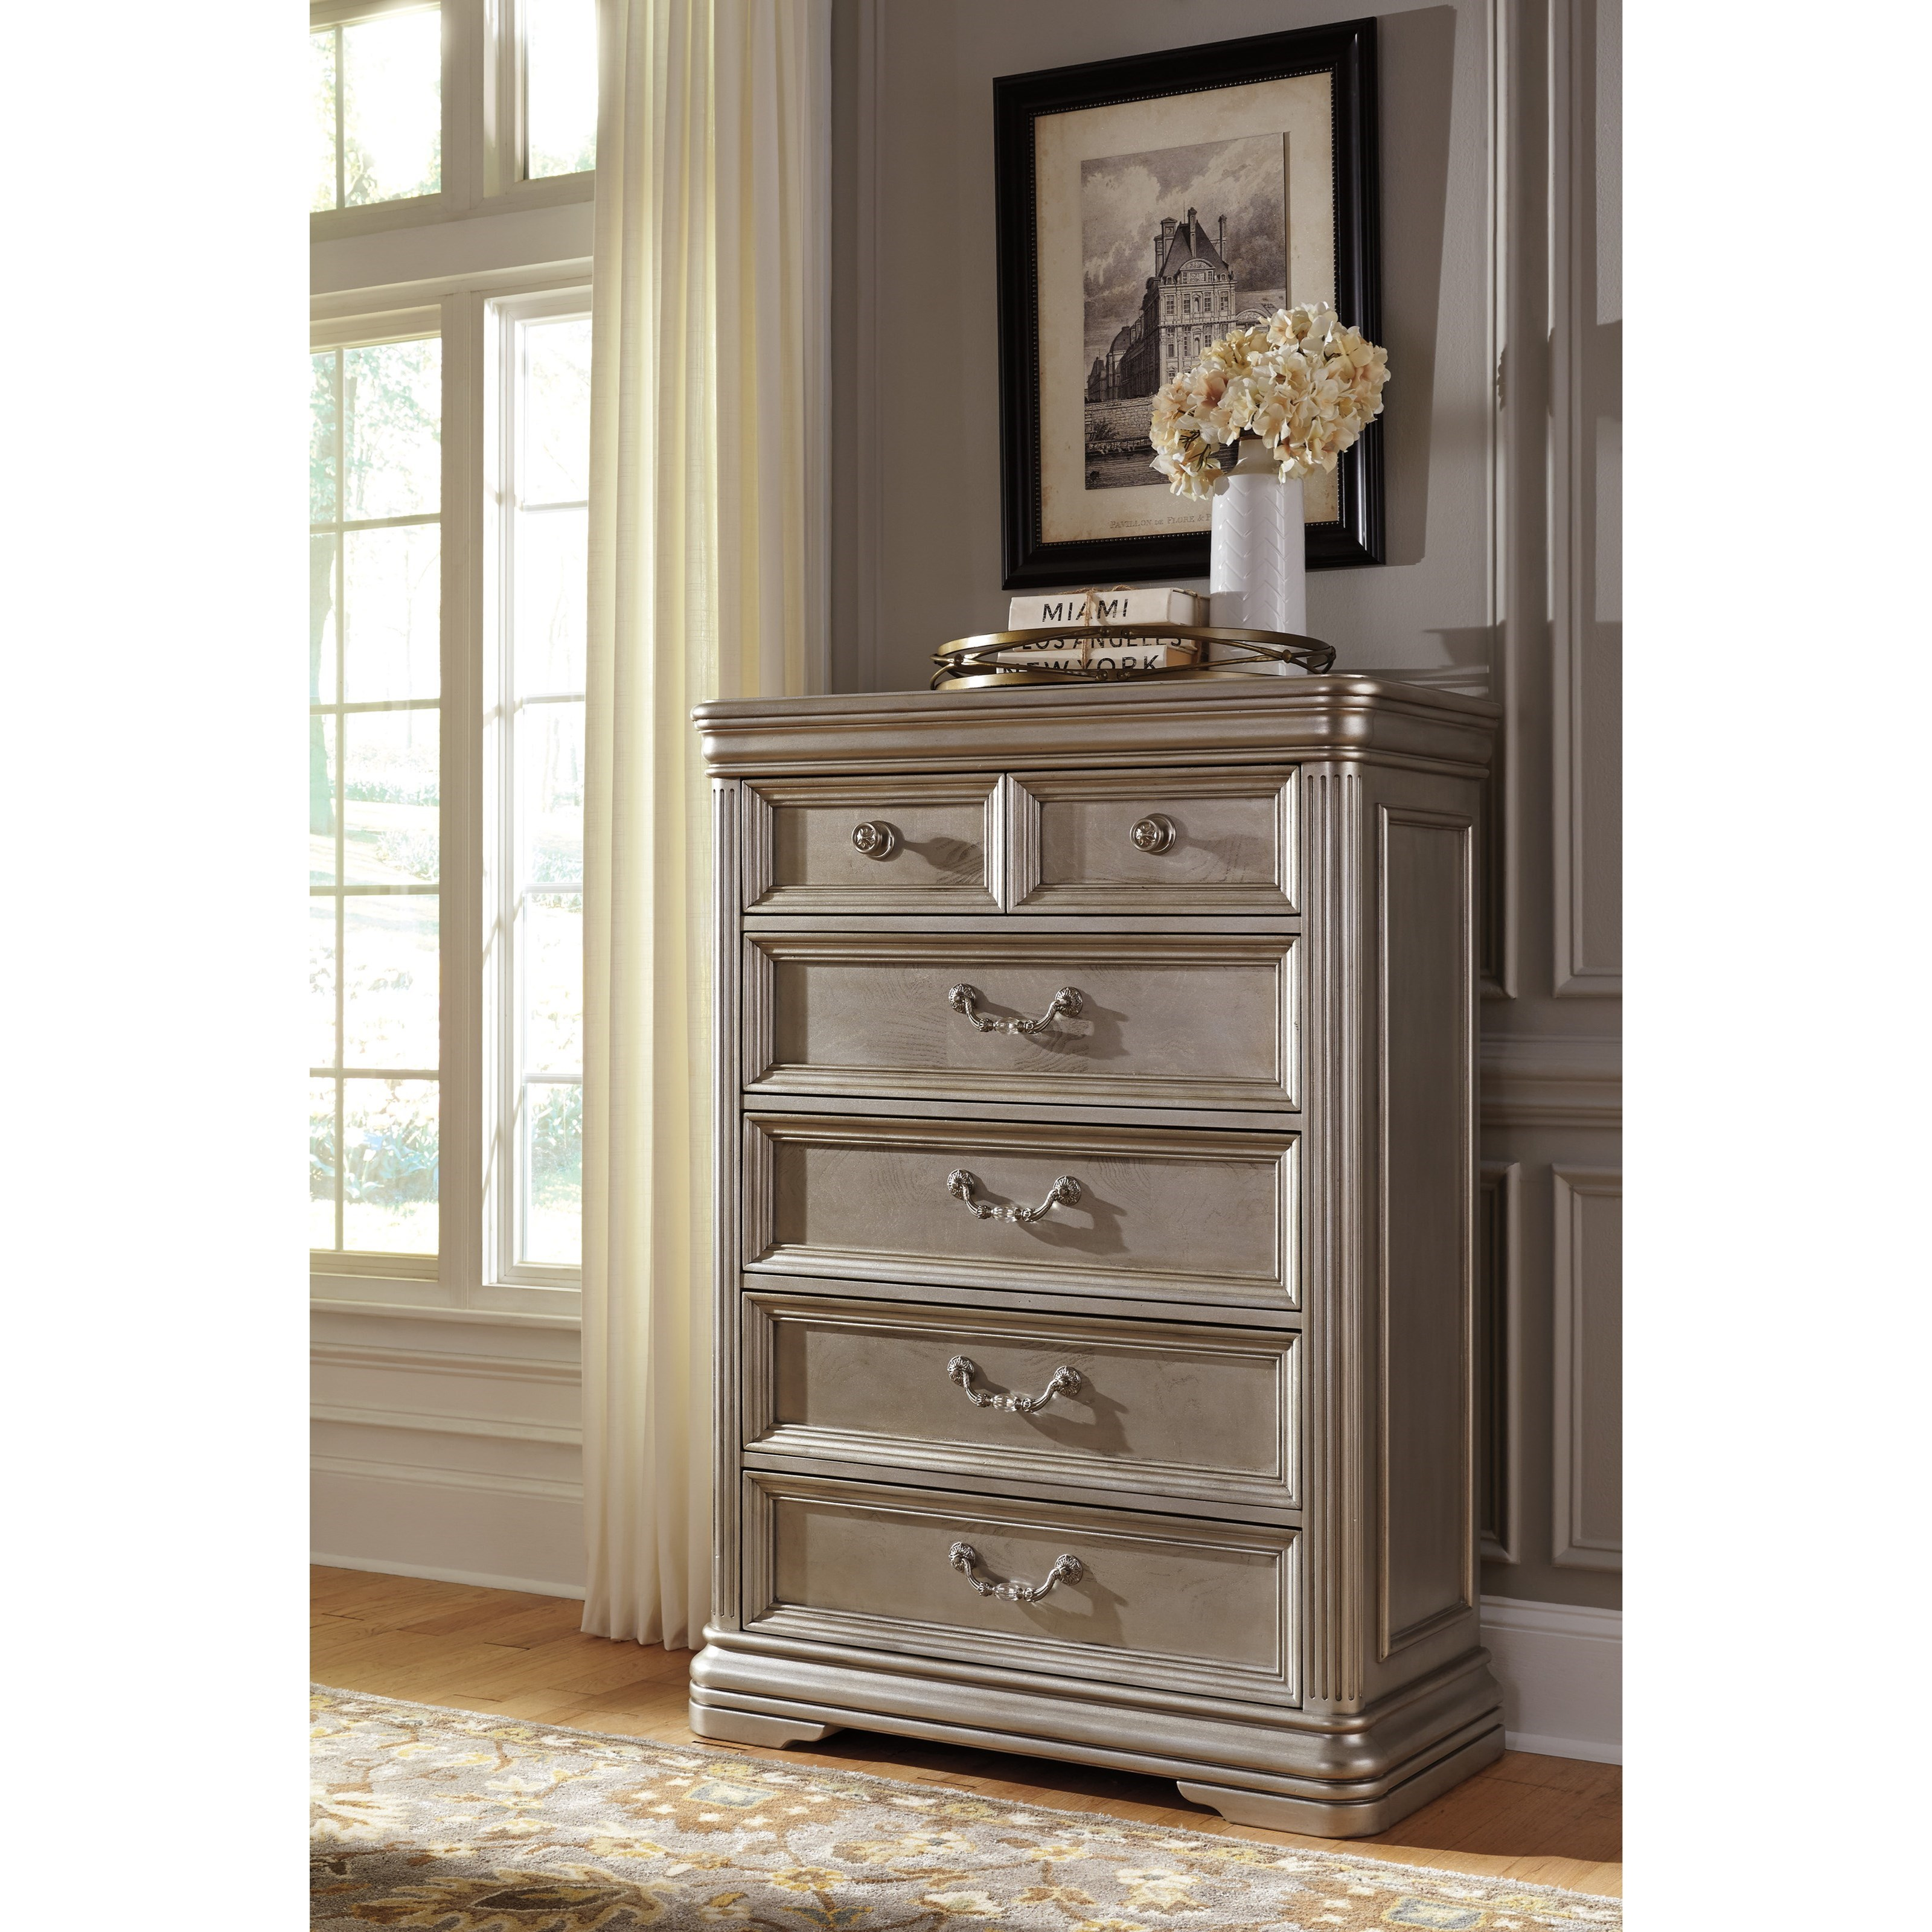 Signature Design By Ashley Birlanny Five Drawer Chest In Silver Finish Royal Furniture